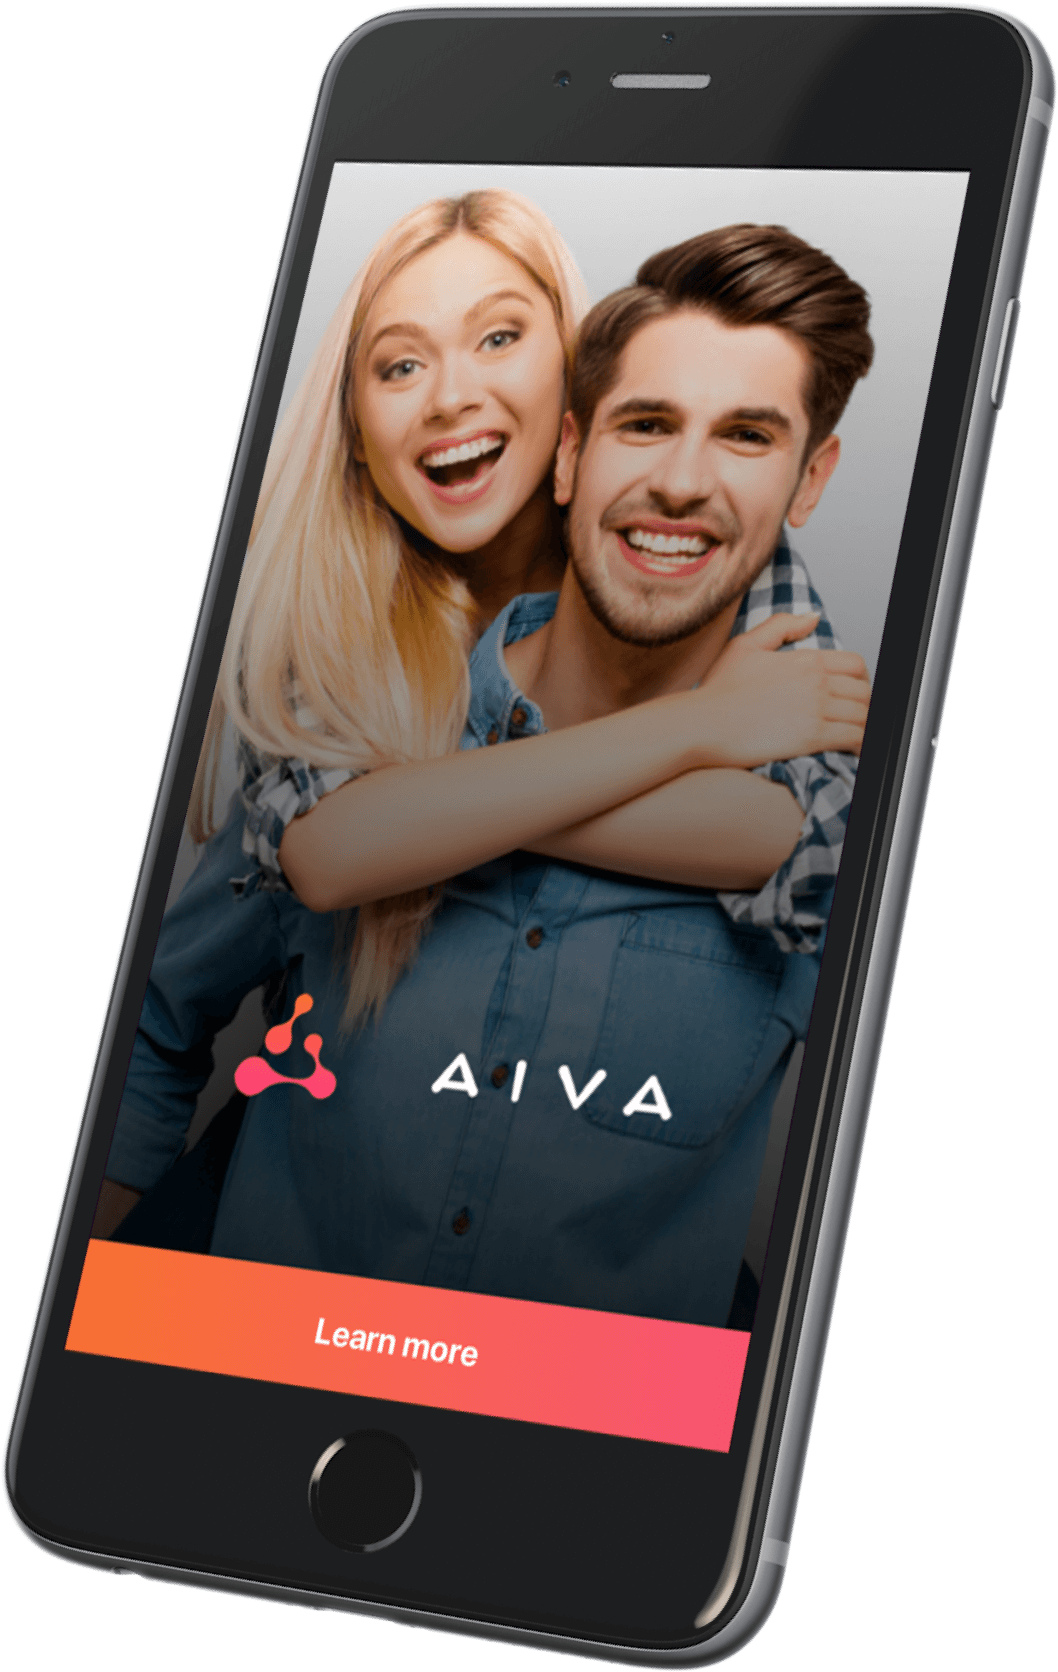 Cover screen of AIVA app on a mobile phone